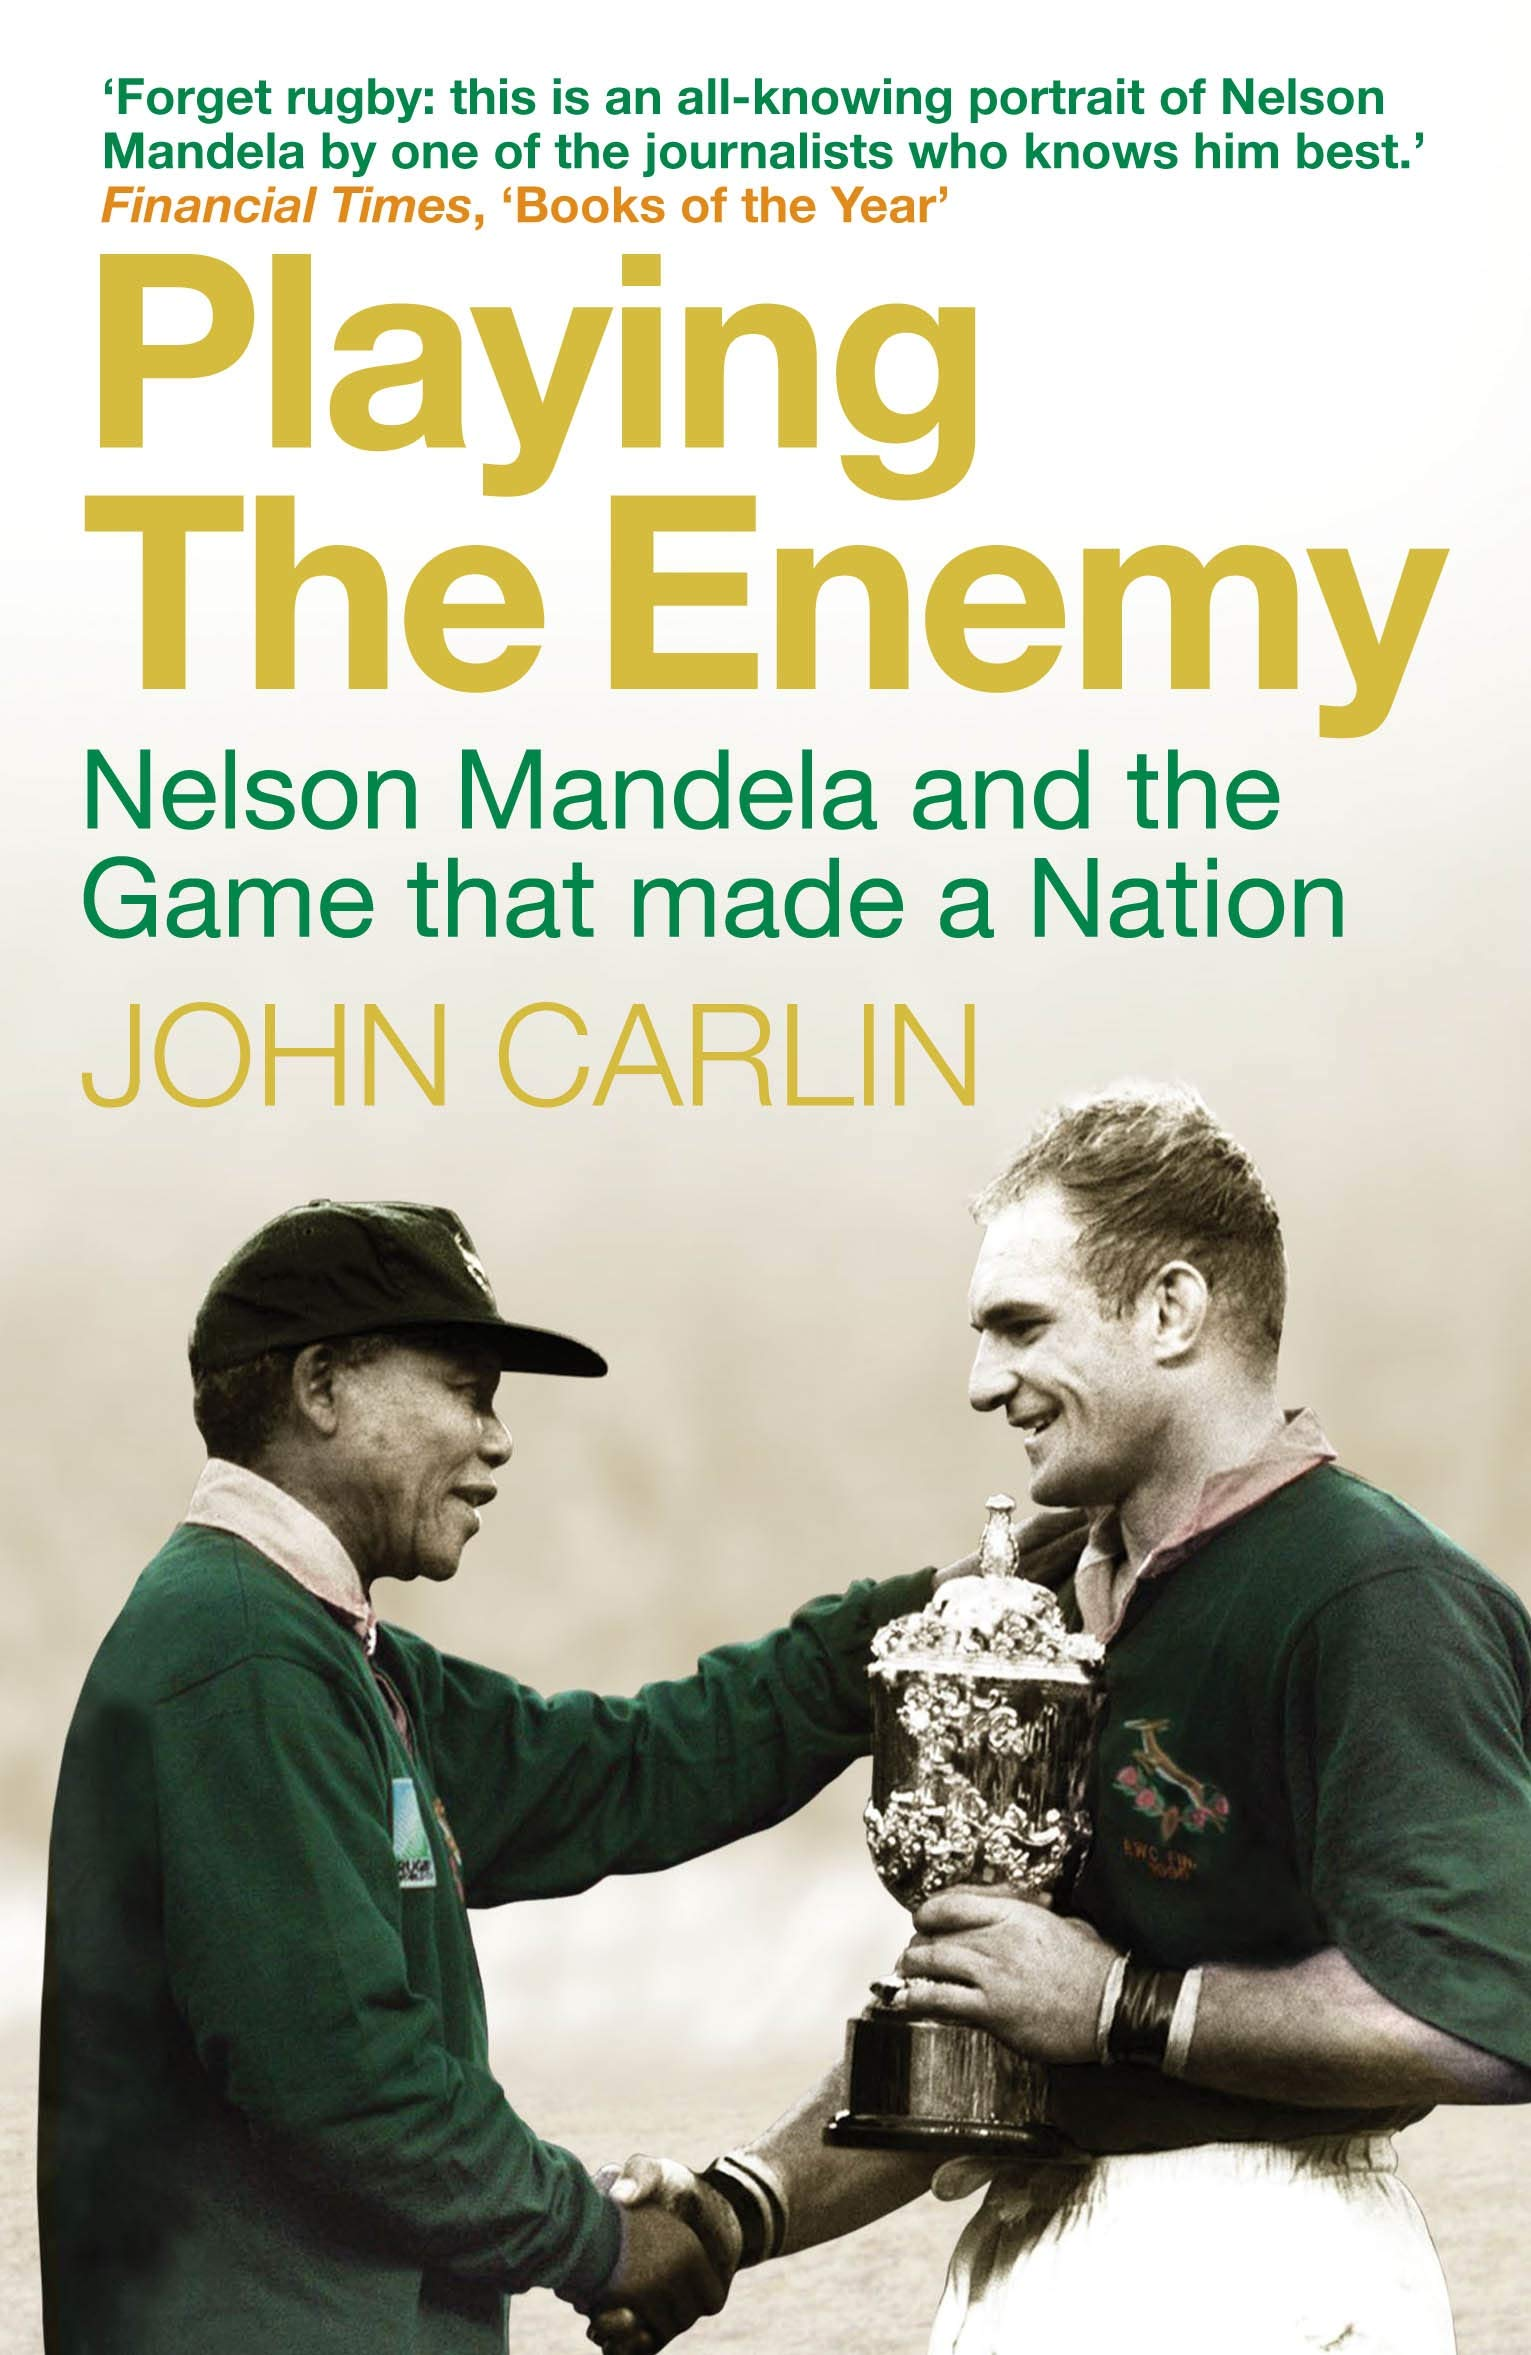 a896b1cff Playing the Enemy: Nelson Mandela and the Game That Made a Nation:  Amazon.es: John Carlin: Libros en idiomas extranjeros